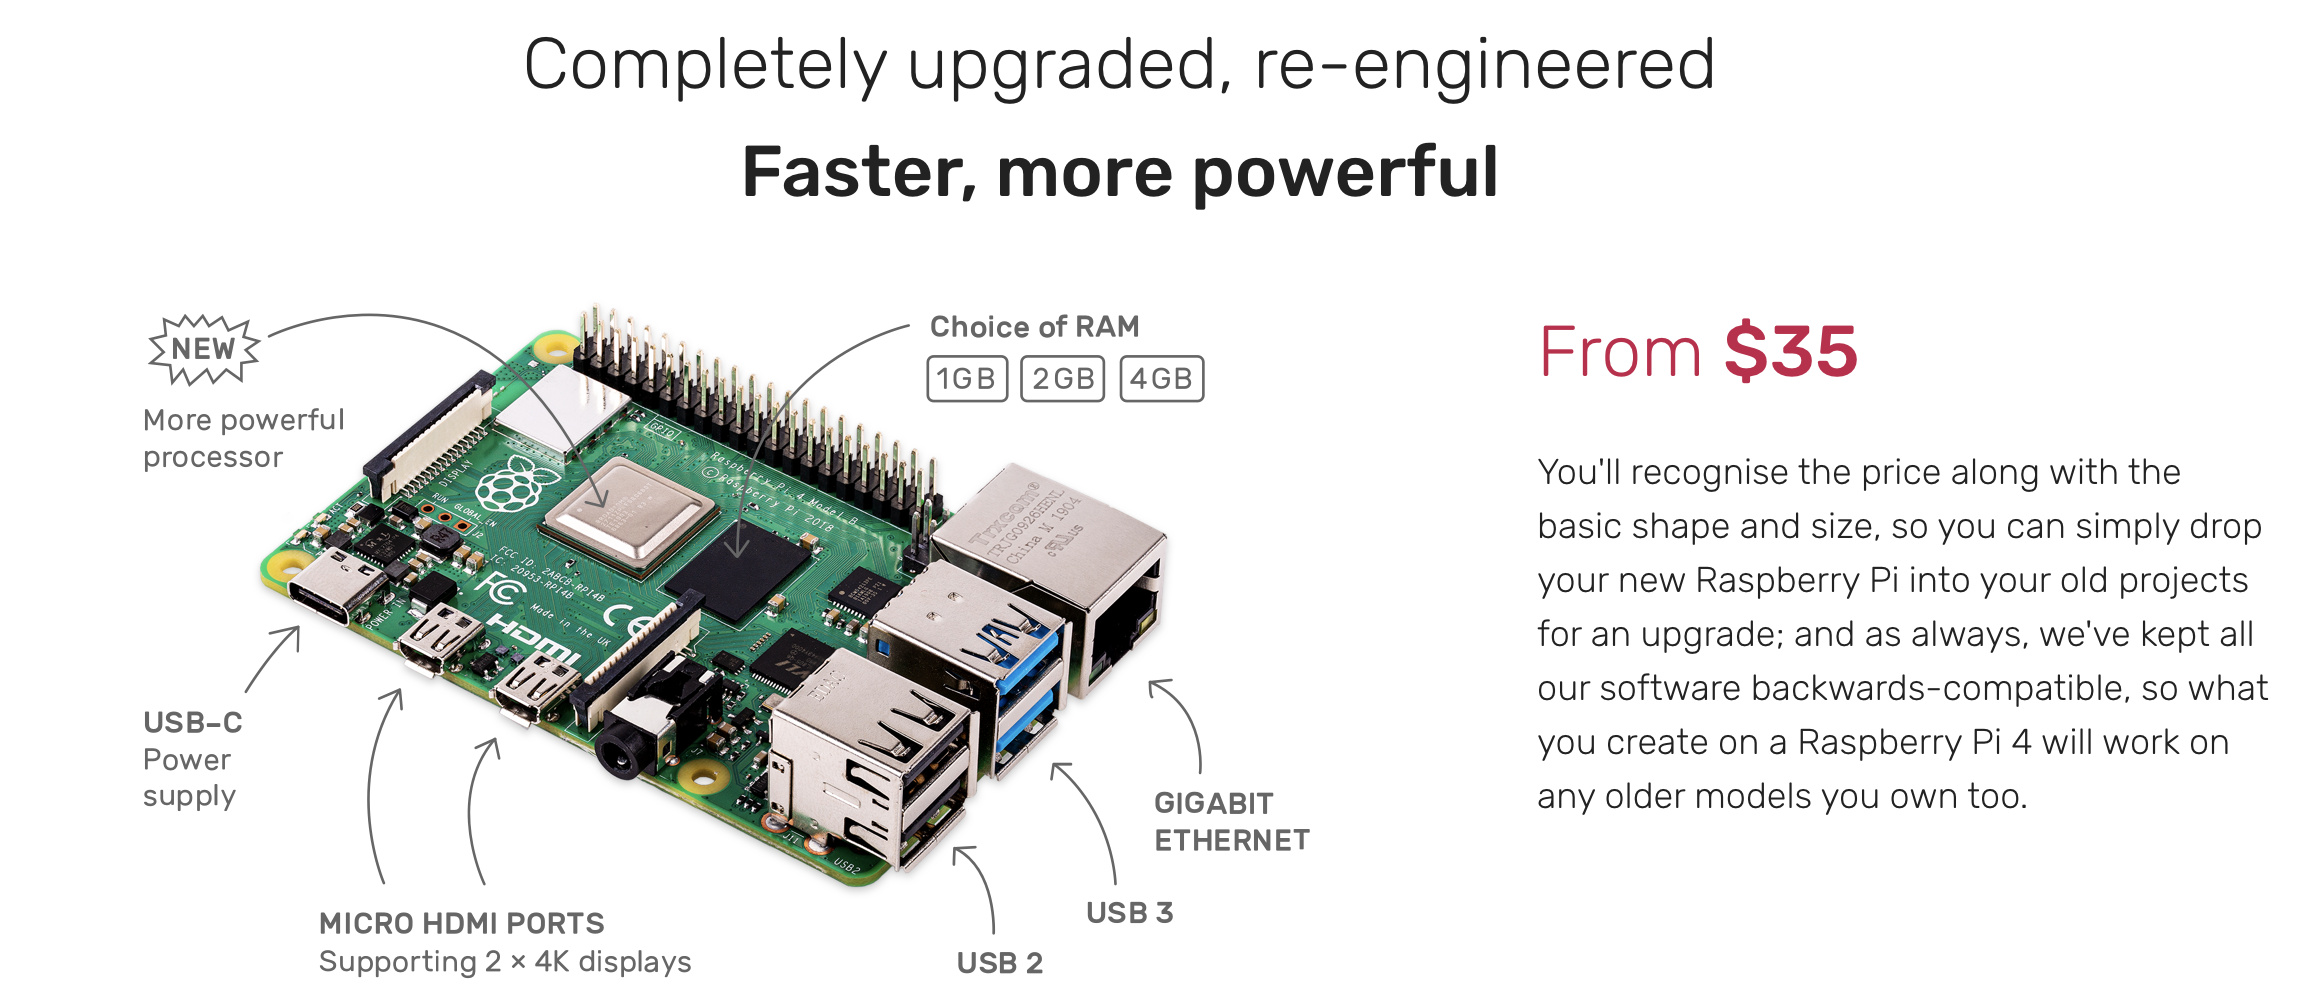 The Raspberry Pi 4 has been announced! - Hardware - Home Assistant